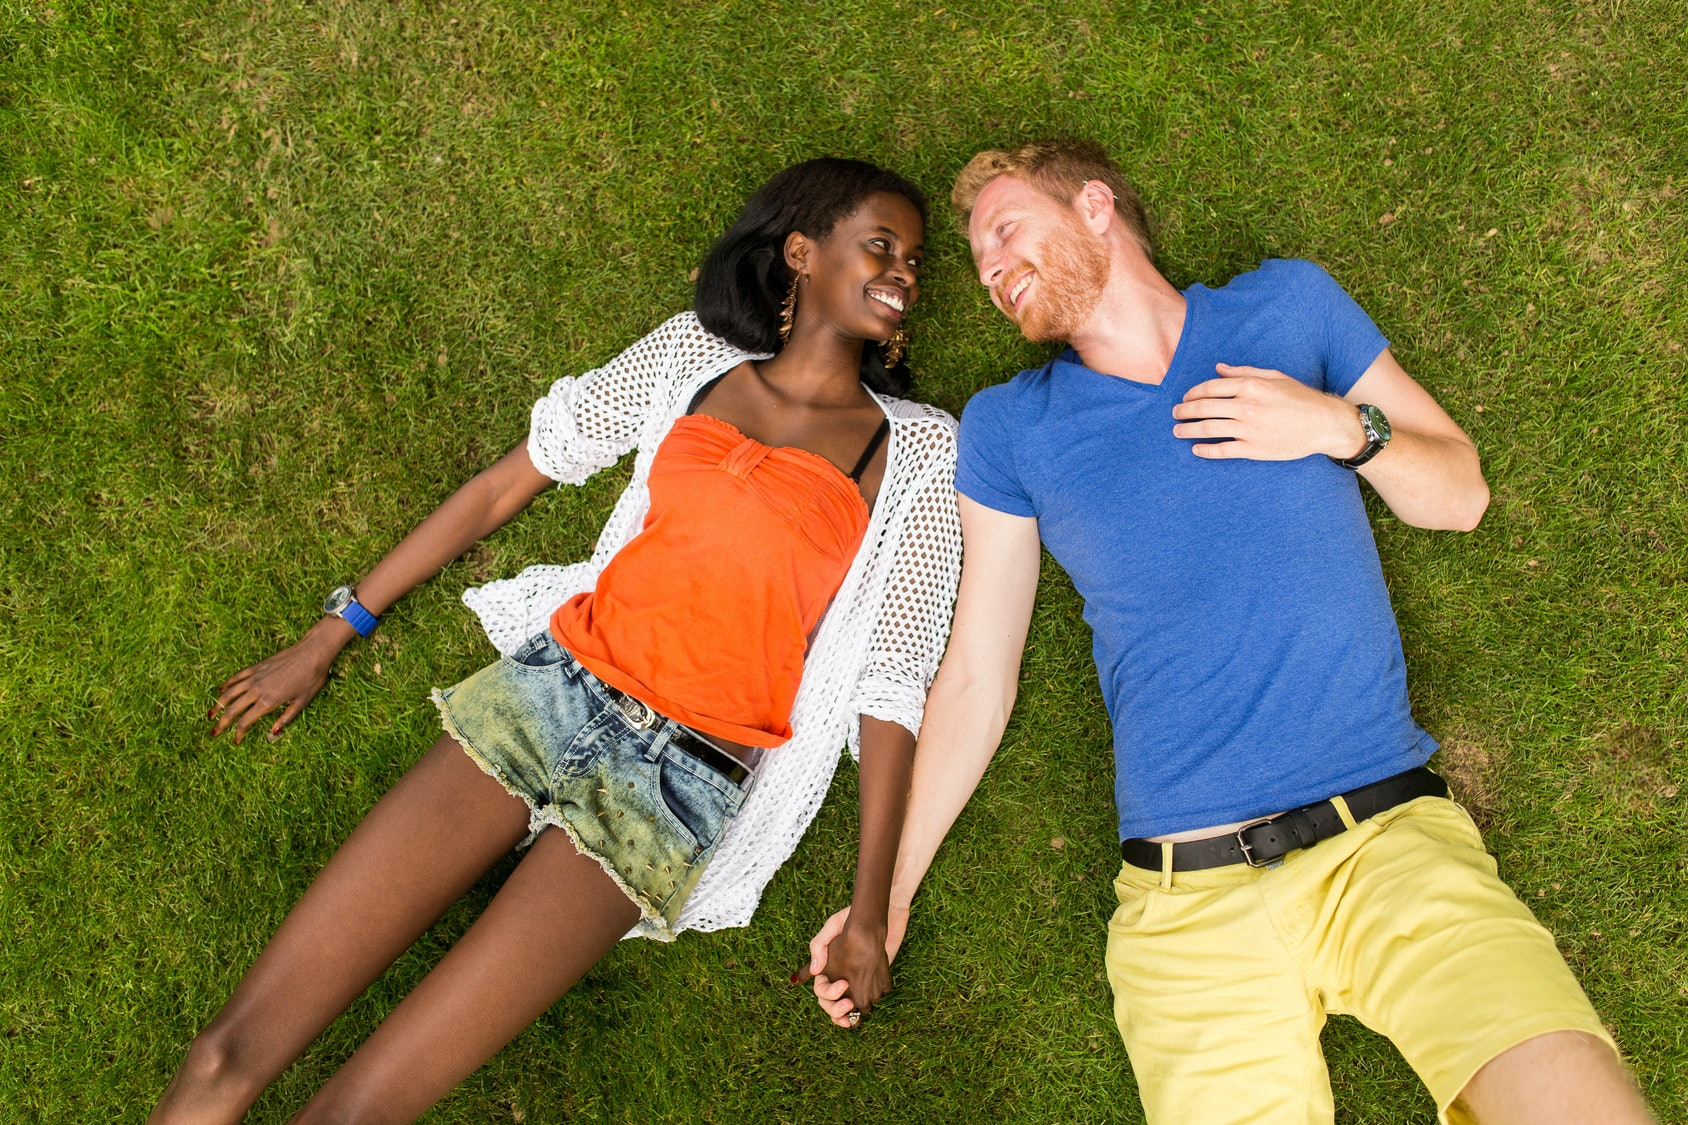 10 ways to get close with a partner without undressing